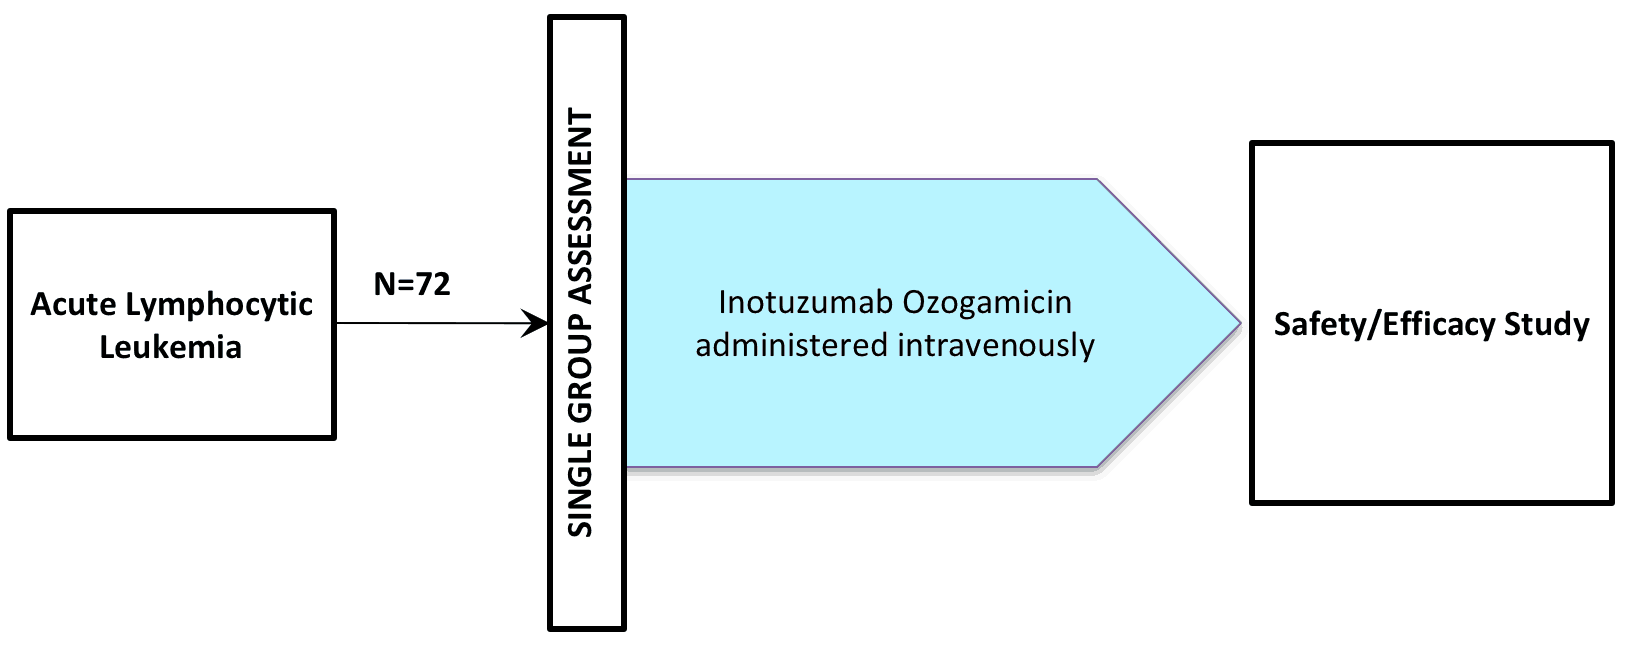 NCT01363297 (Clinical Trial / Inotuzumab ozogamycin / CMC-544)